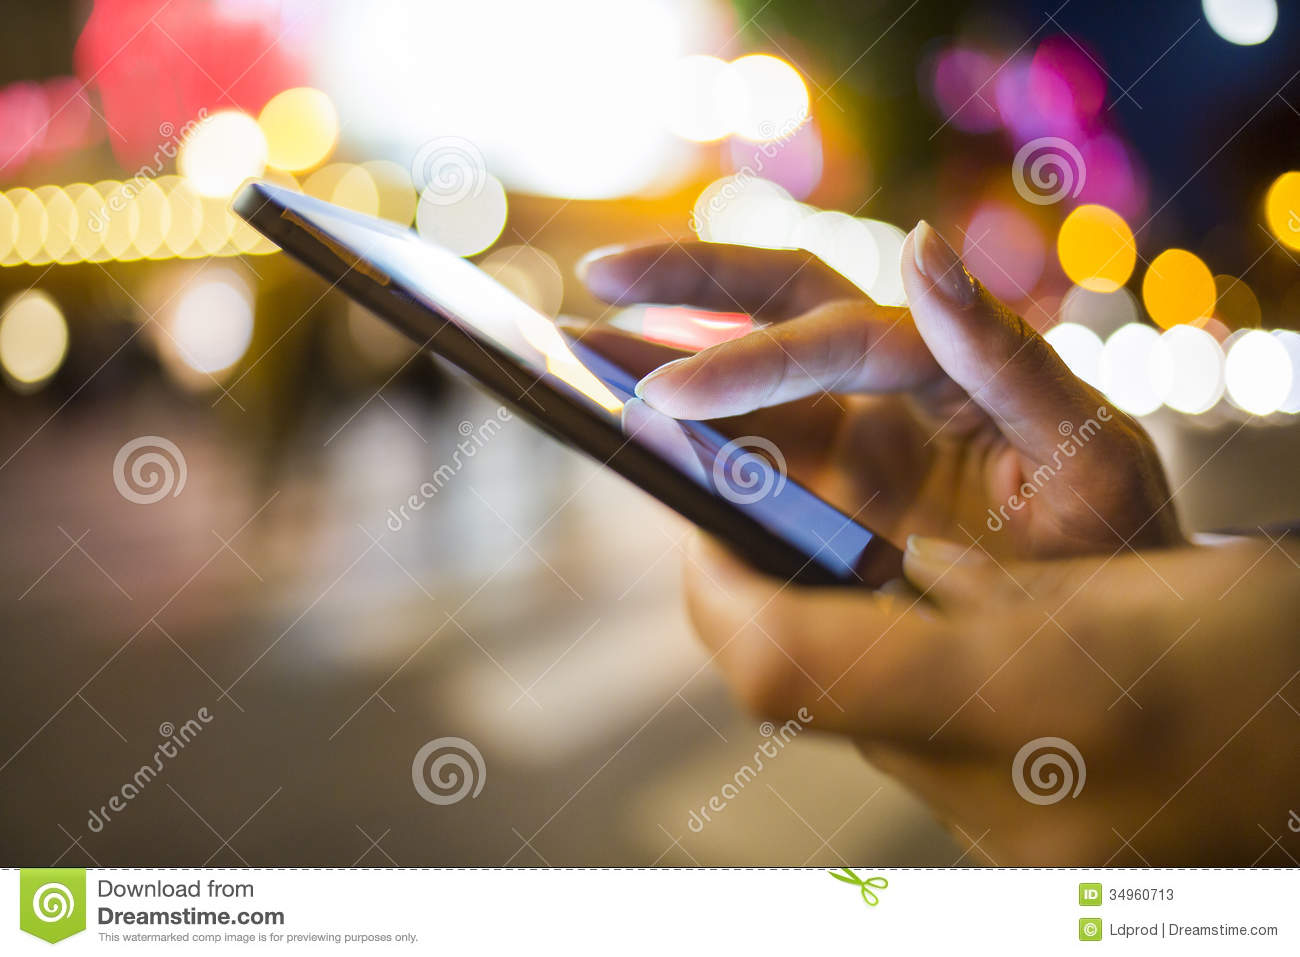 Woman using her Mobile Phone in the street, night light environment